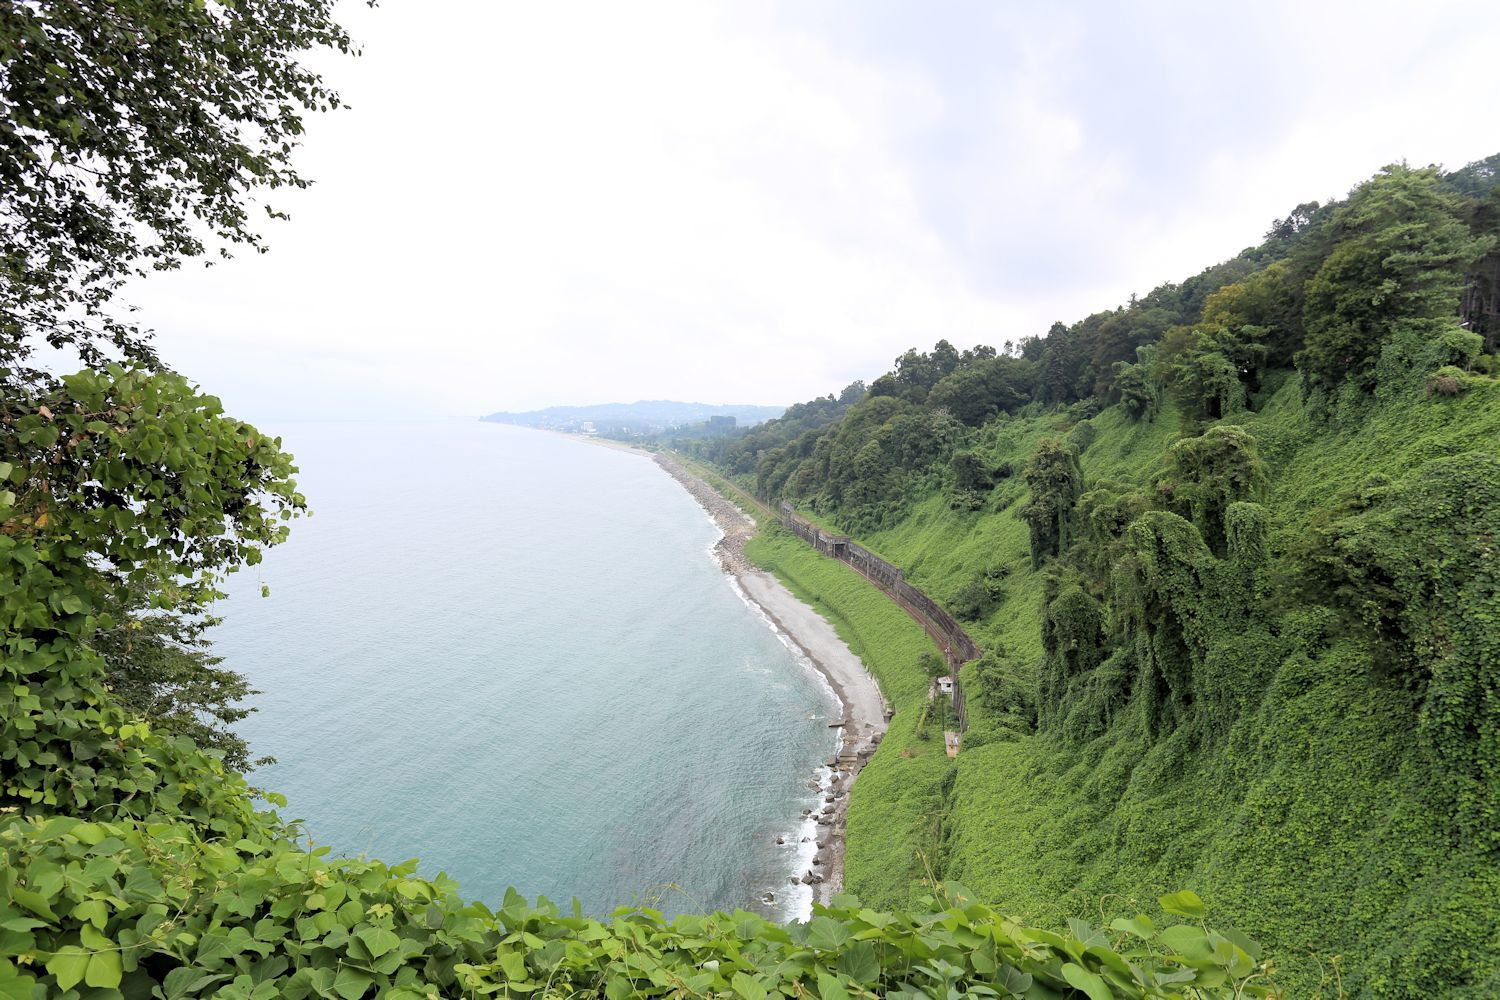 Black sea and the railway view from the Batumi Botanical Garden